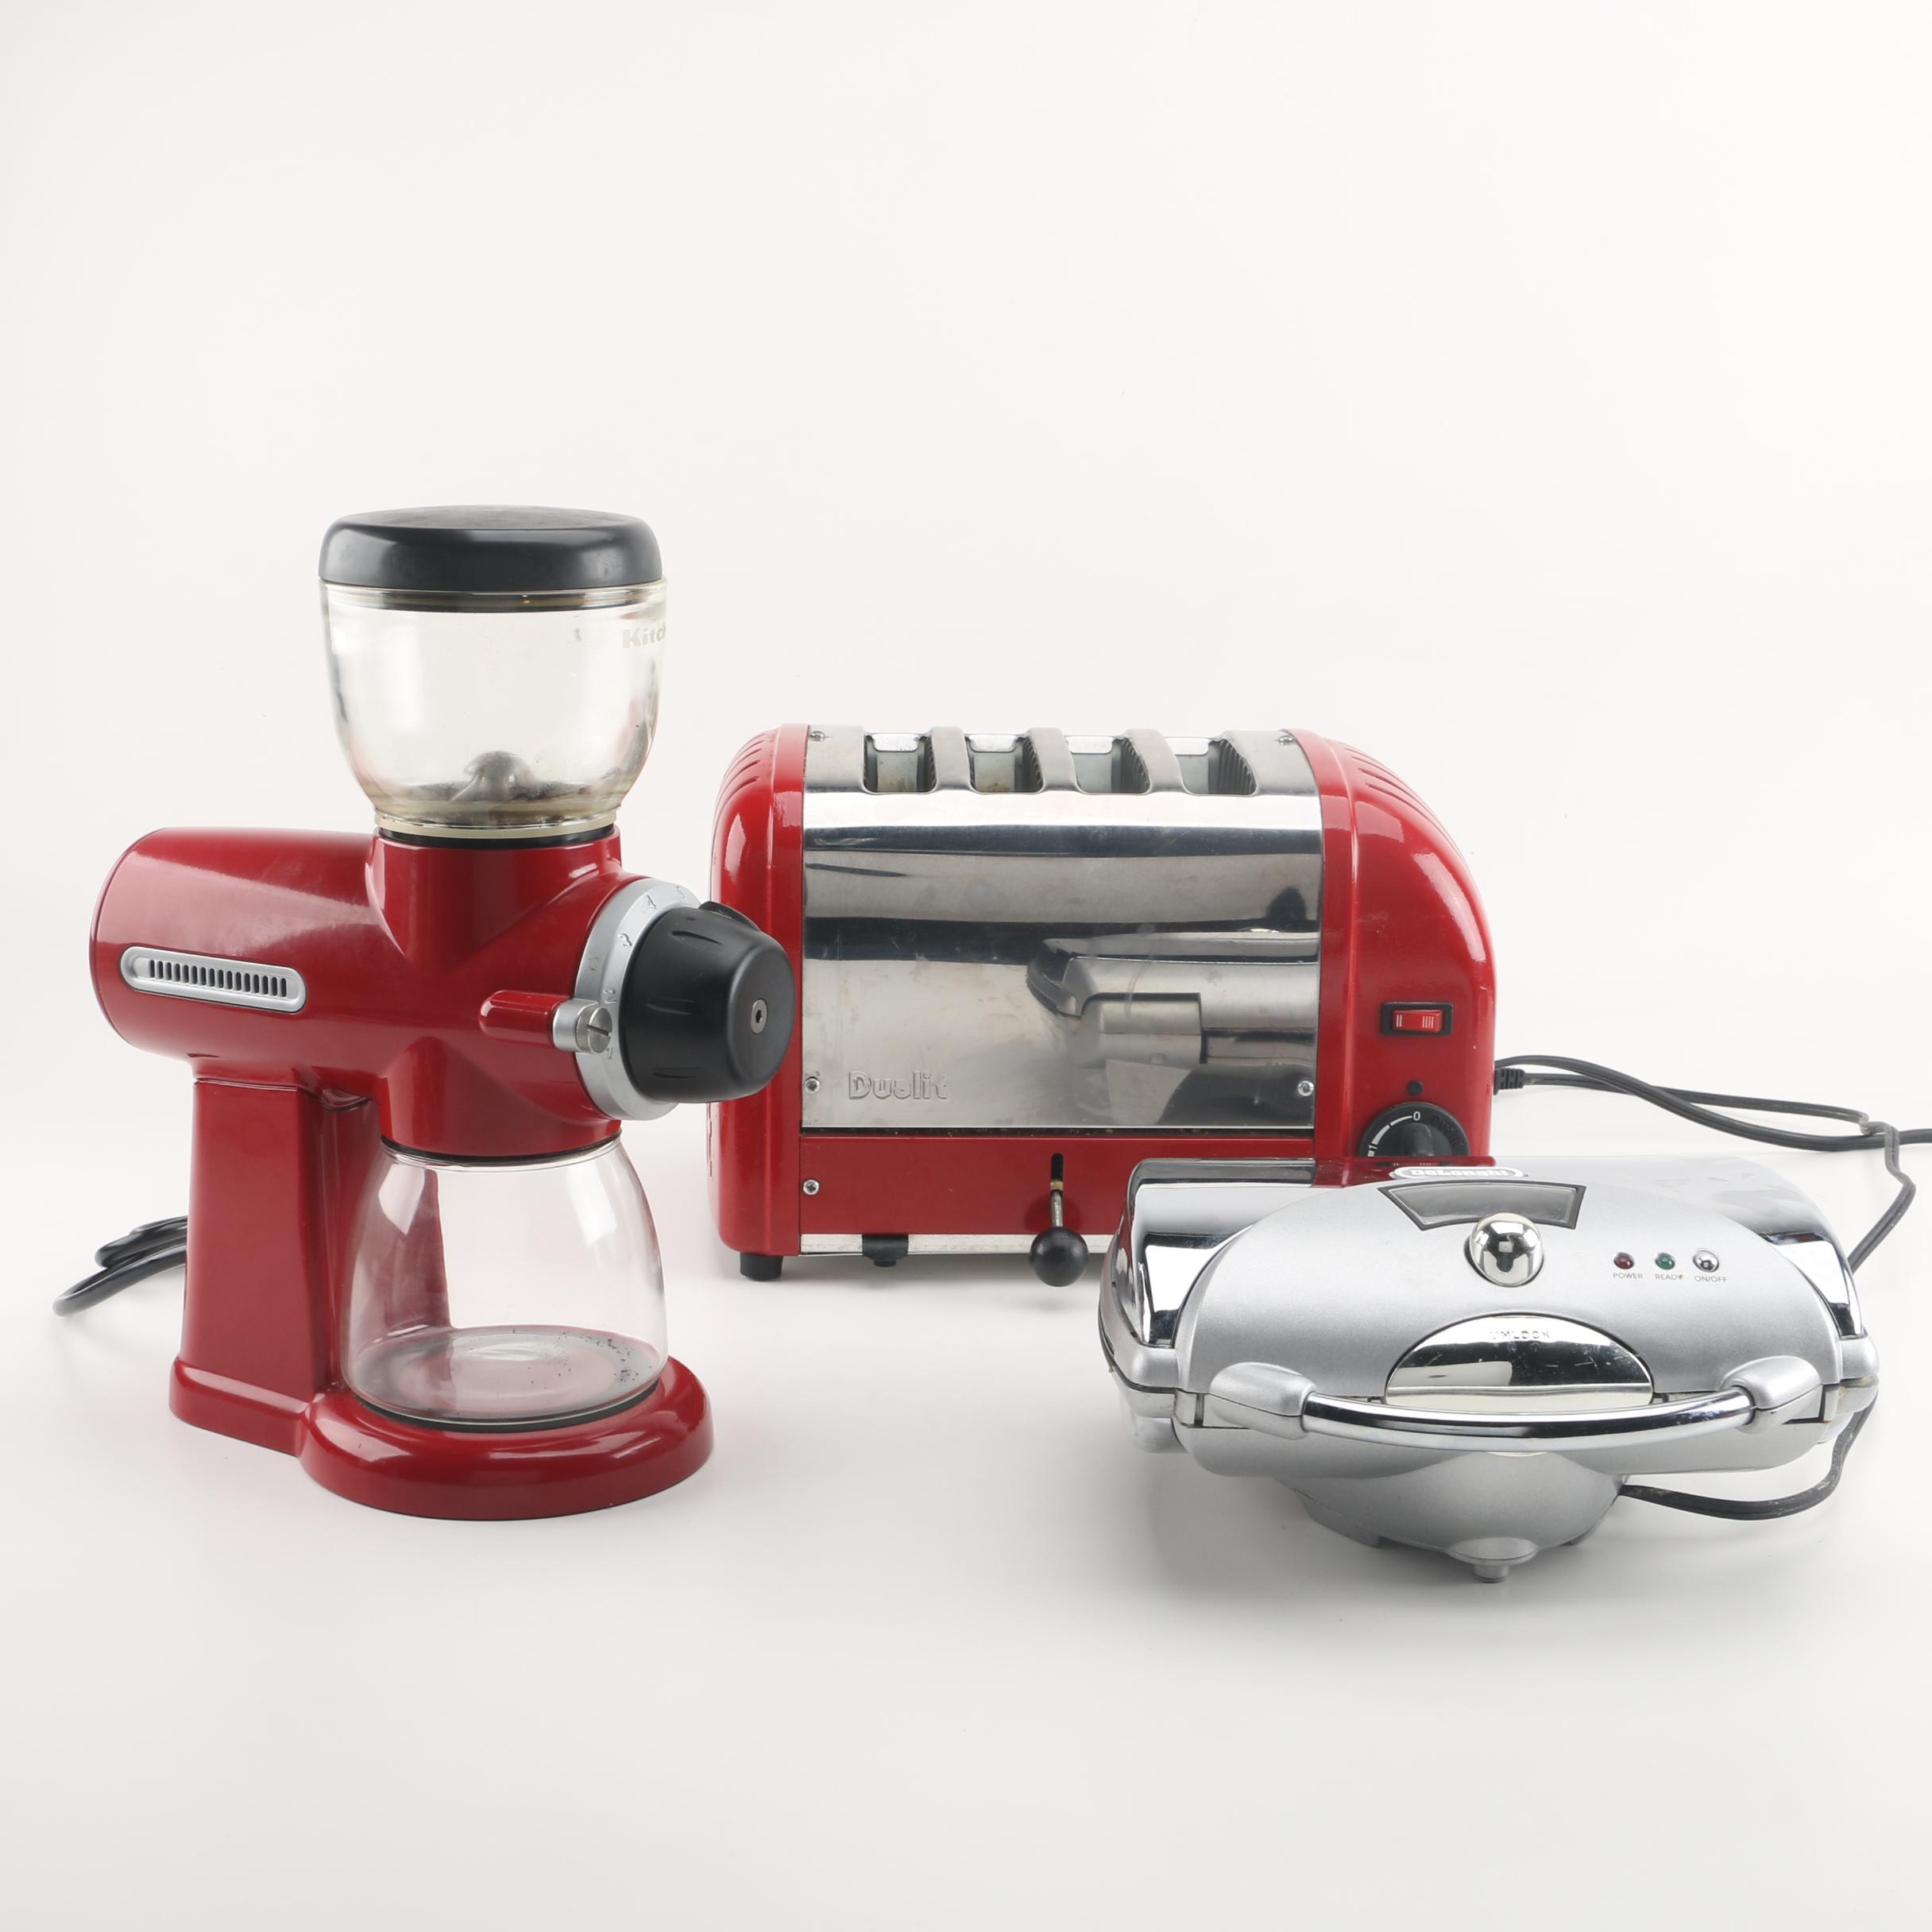 KitchenAid Pro Line Coffee Mill with Waffle Maker and Toaster